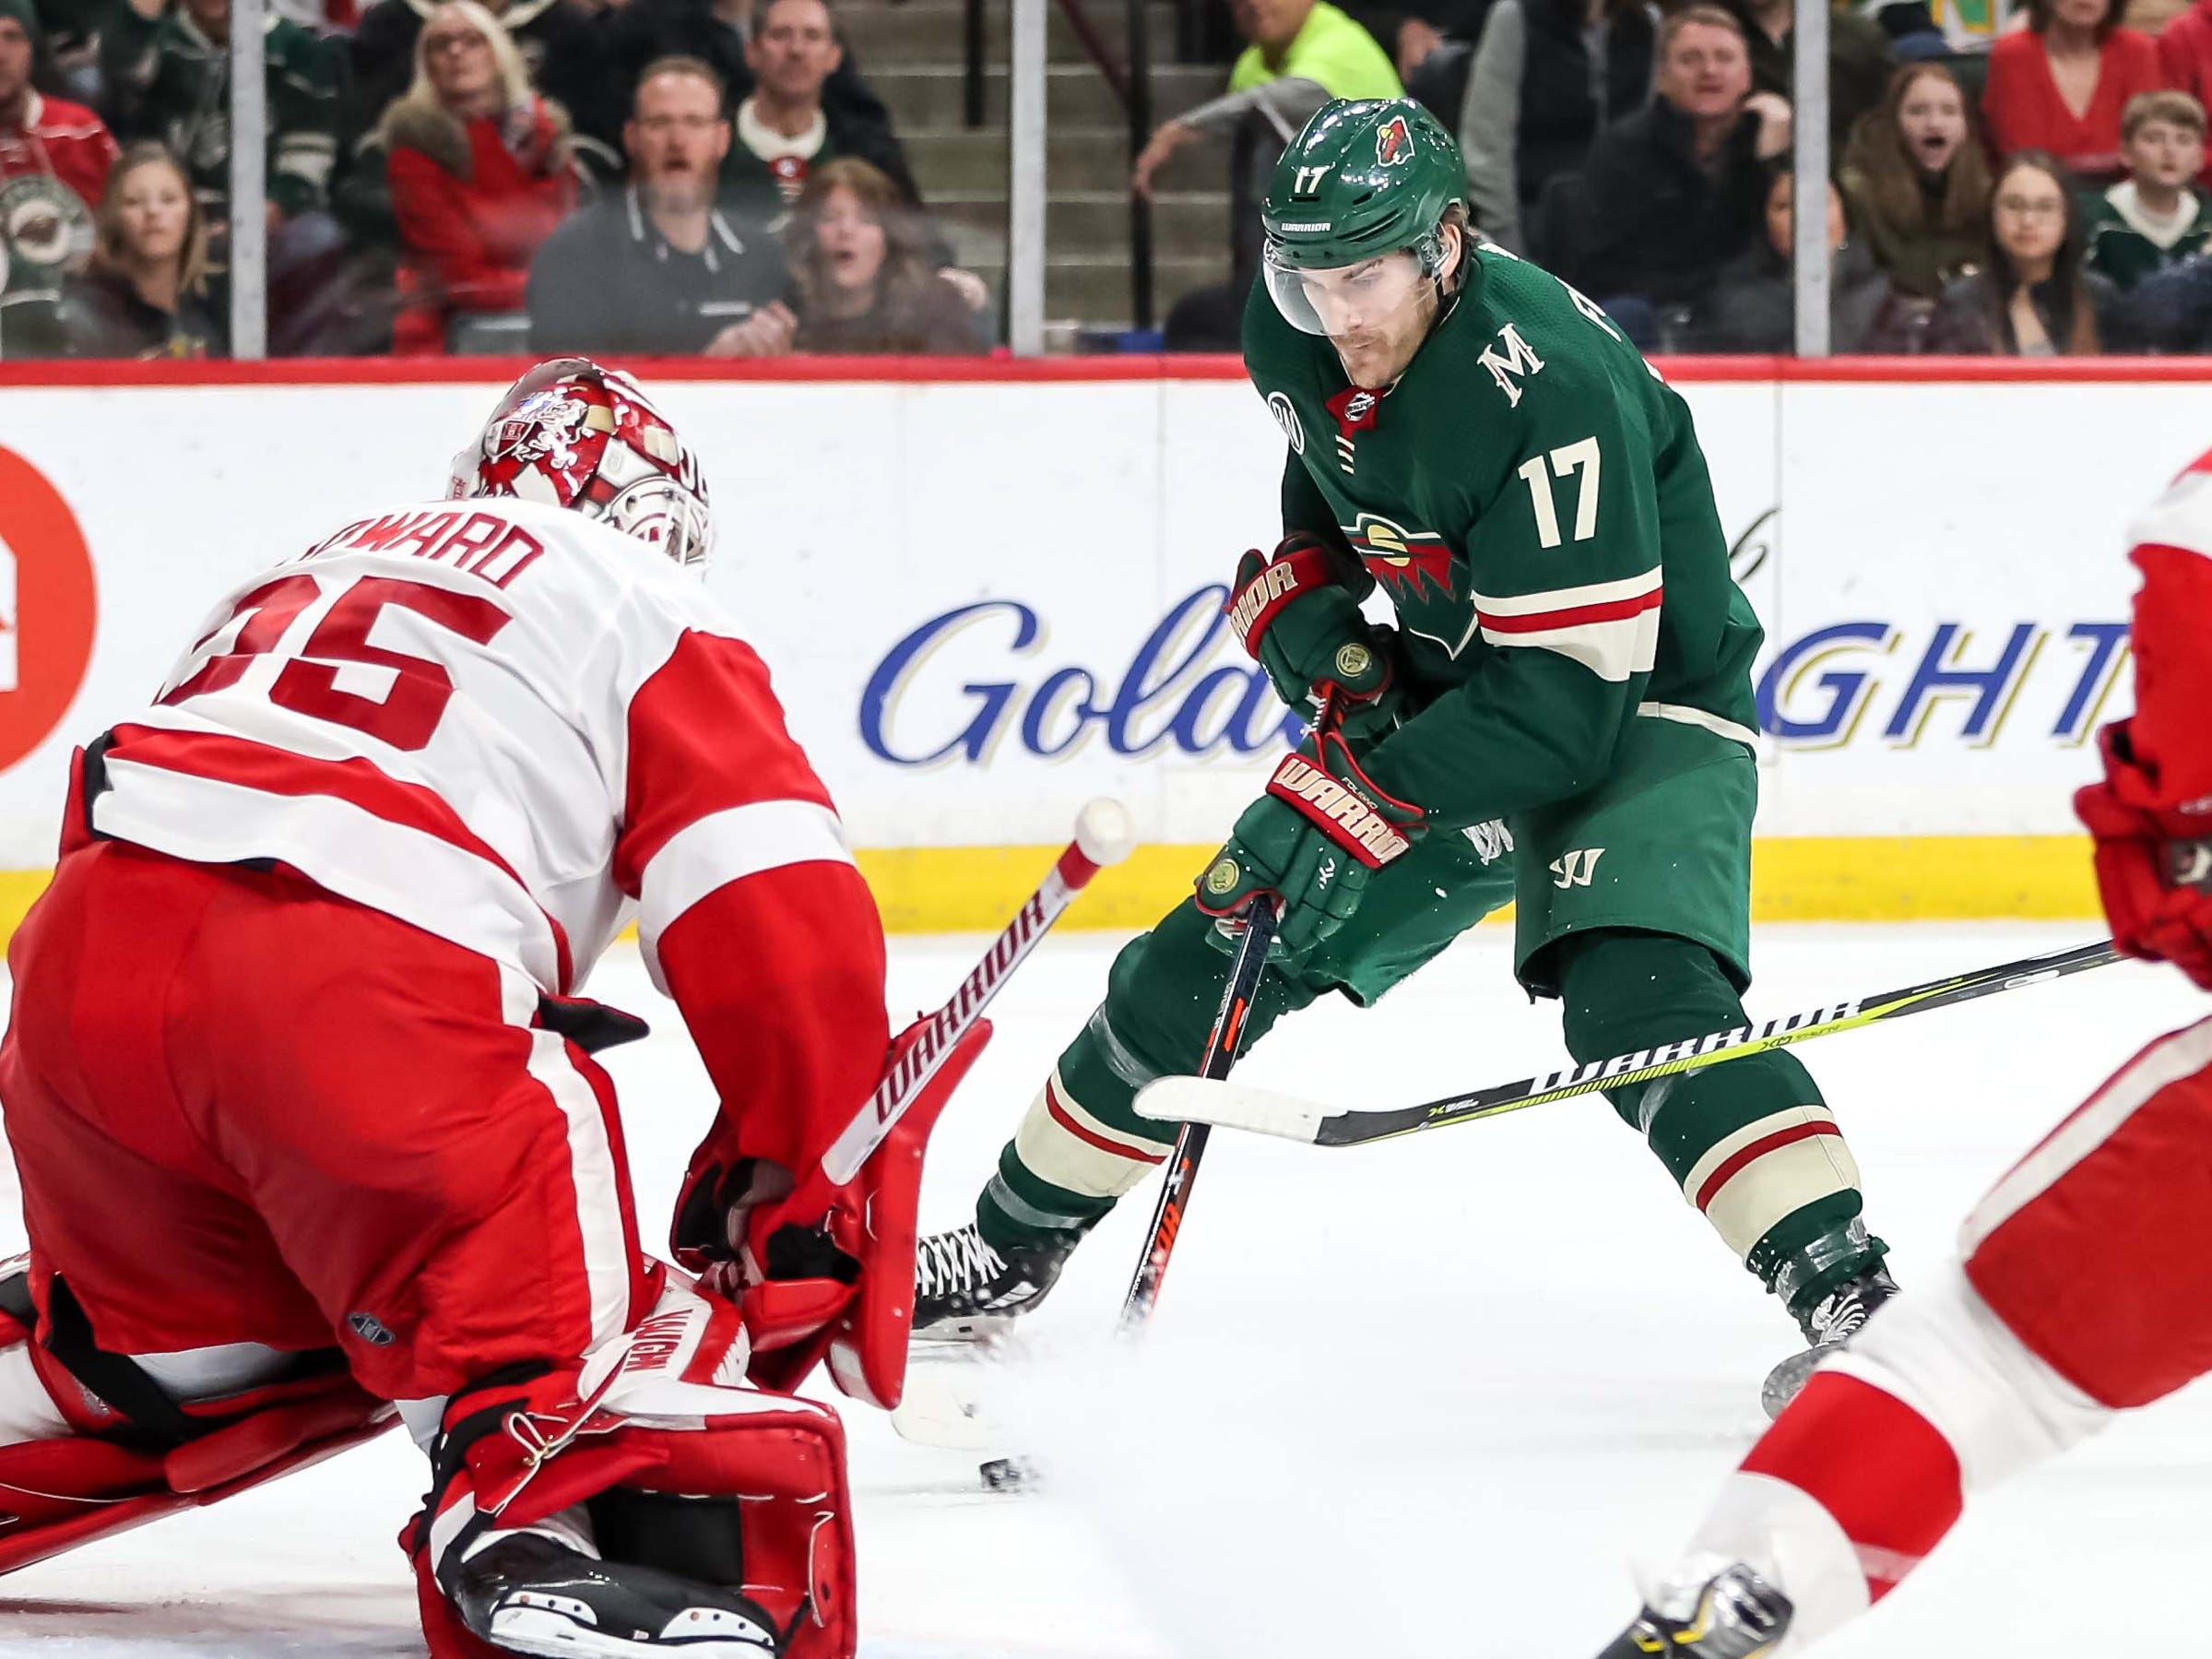 Minnesota Wild forward Marcus Foligno shoots on Detroit Red Wings goalie Jimmy Howard during the second period Jan. 12, 2019 in Saint Paul, Minn.